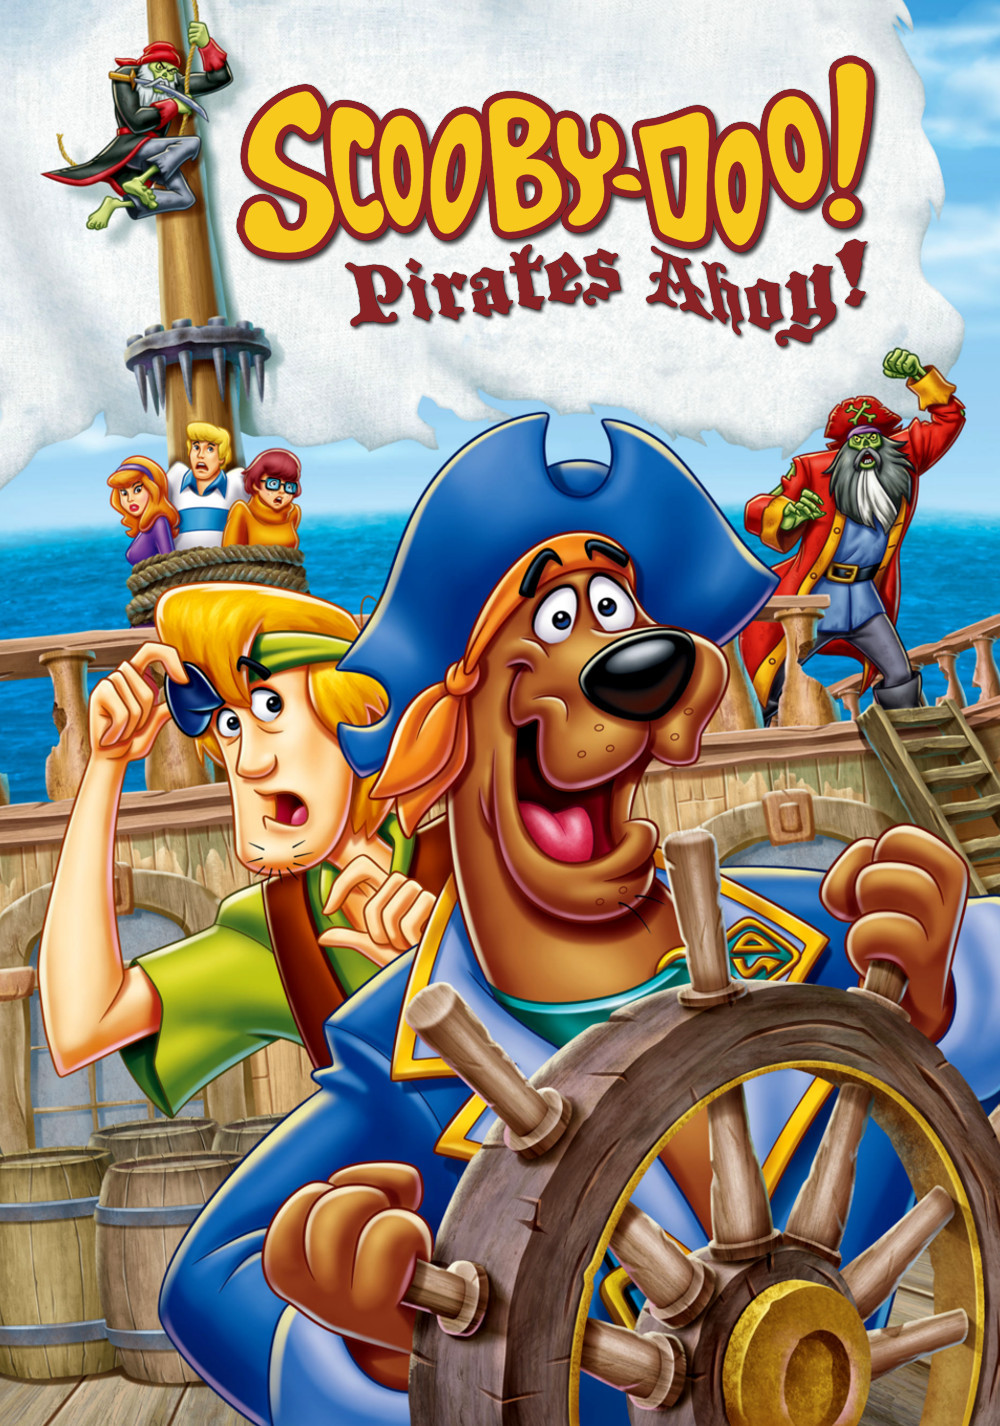 Scooby-Doo! Pirates Ahoy! English (Eng Subs) x264 Bluray 480p [228.19 MB] | 720p [2.63 GB] mkv